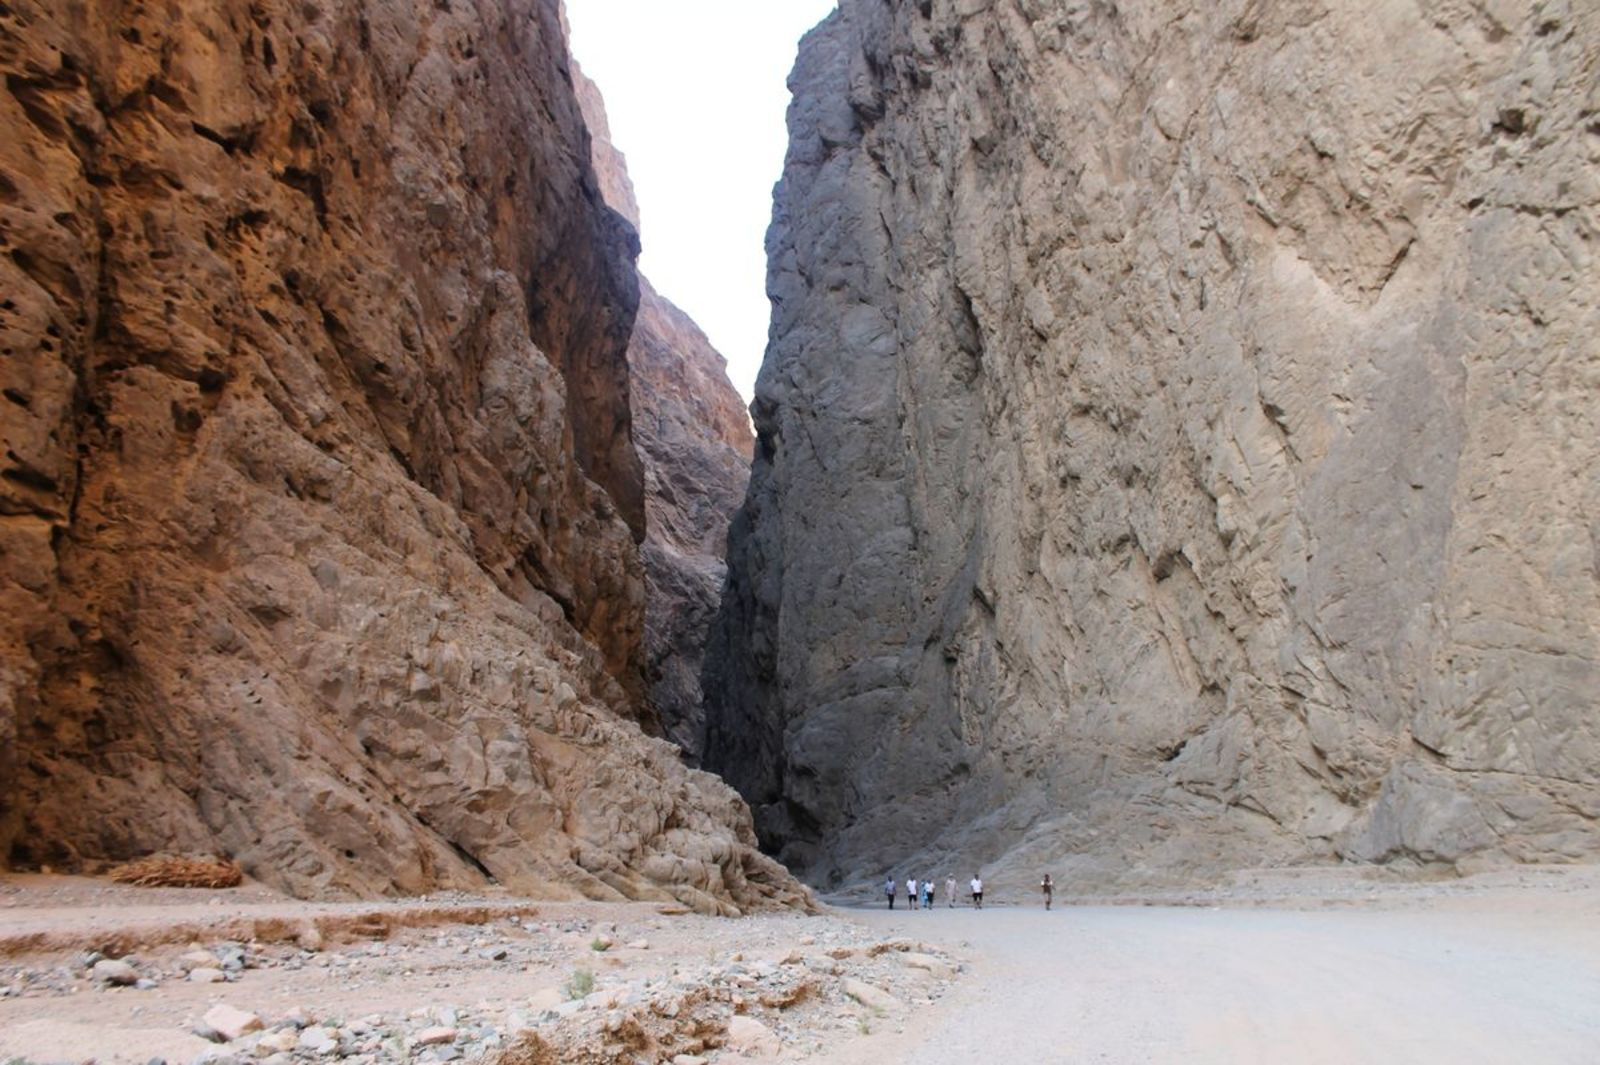 relates to Six Tourist Spots in Saudi Arabia That Will Surprise You